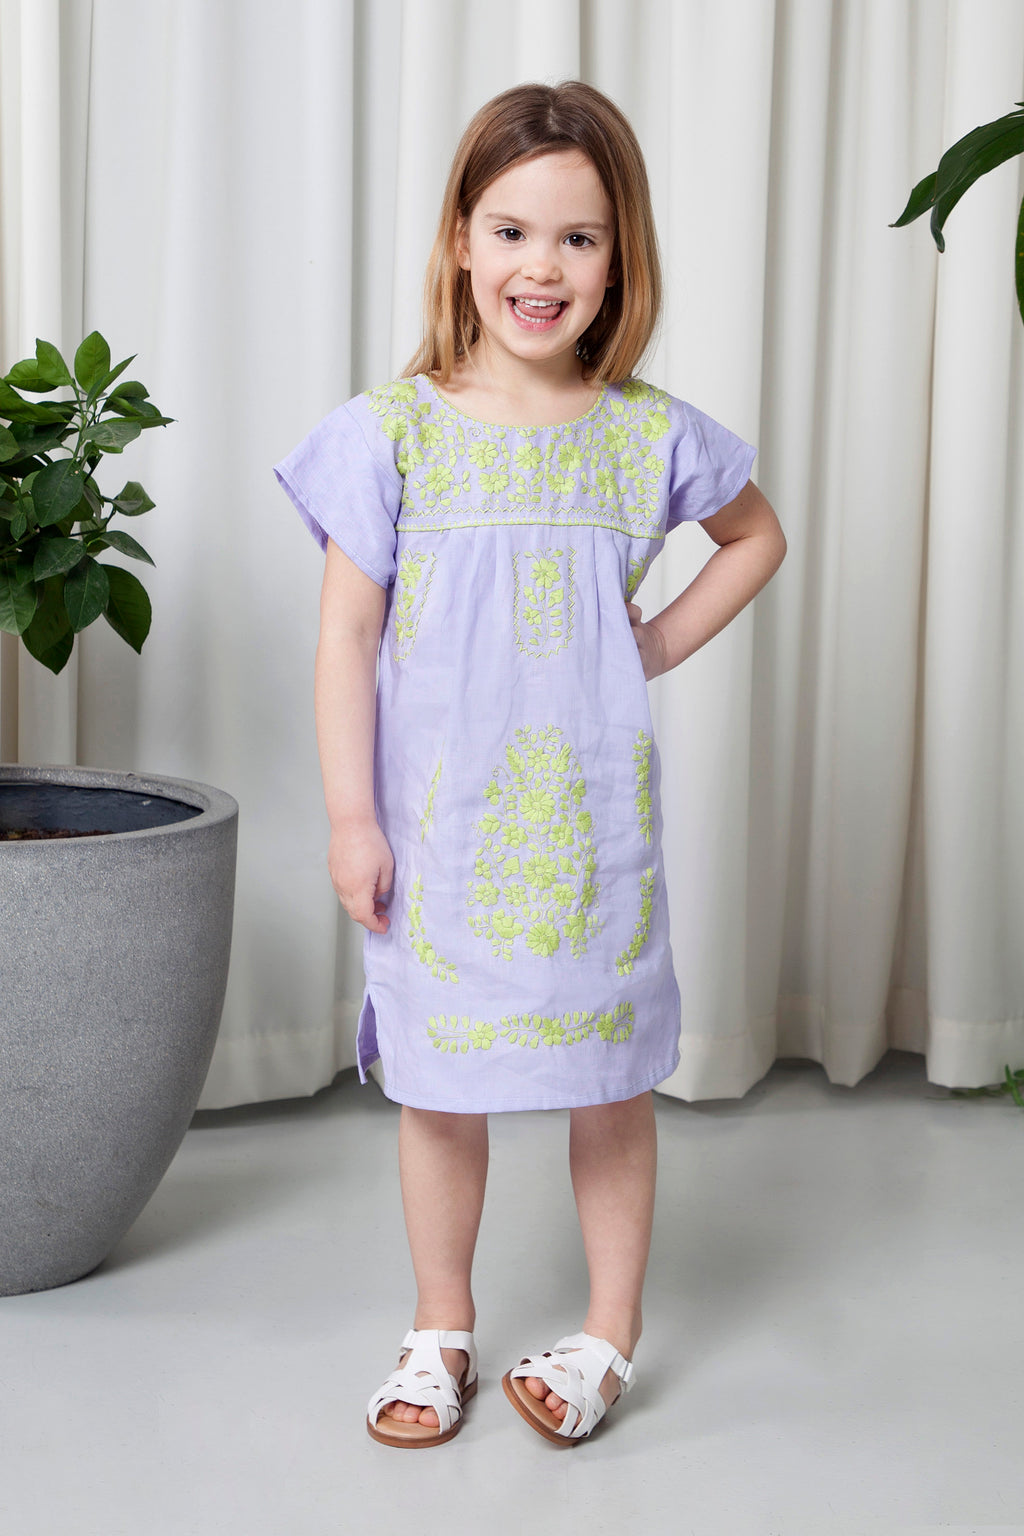 THE GIRL SPRING DRESS